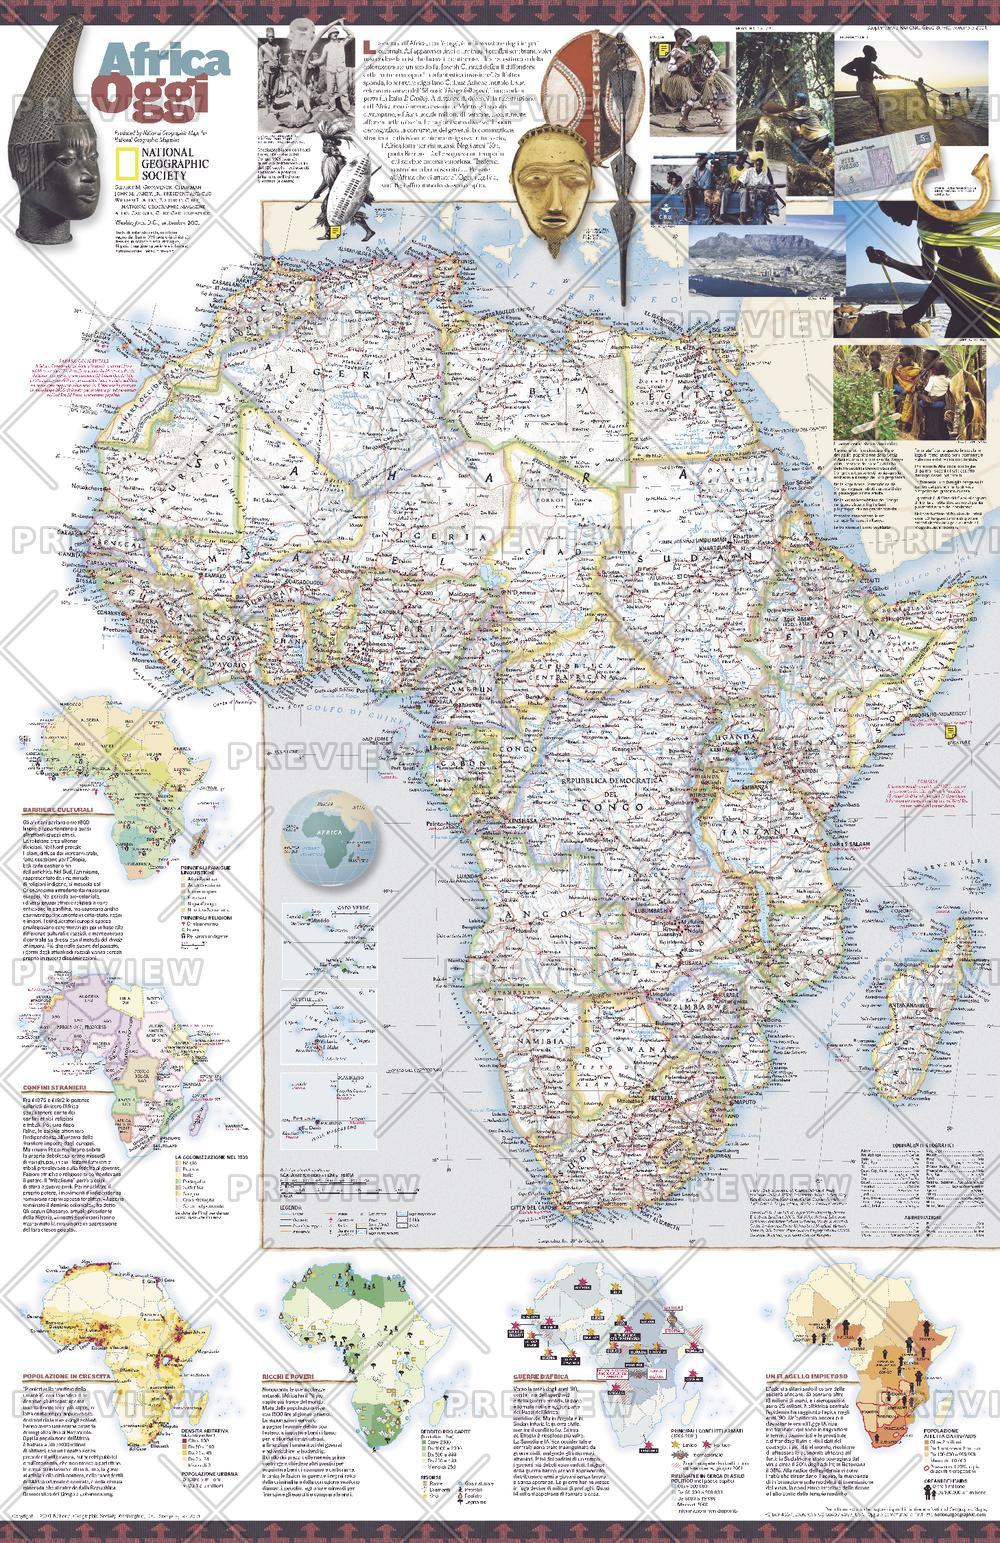 Africa Oggi  -  Published 2001